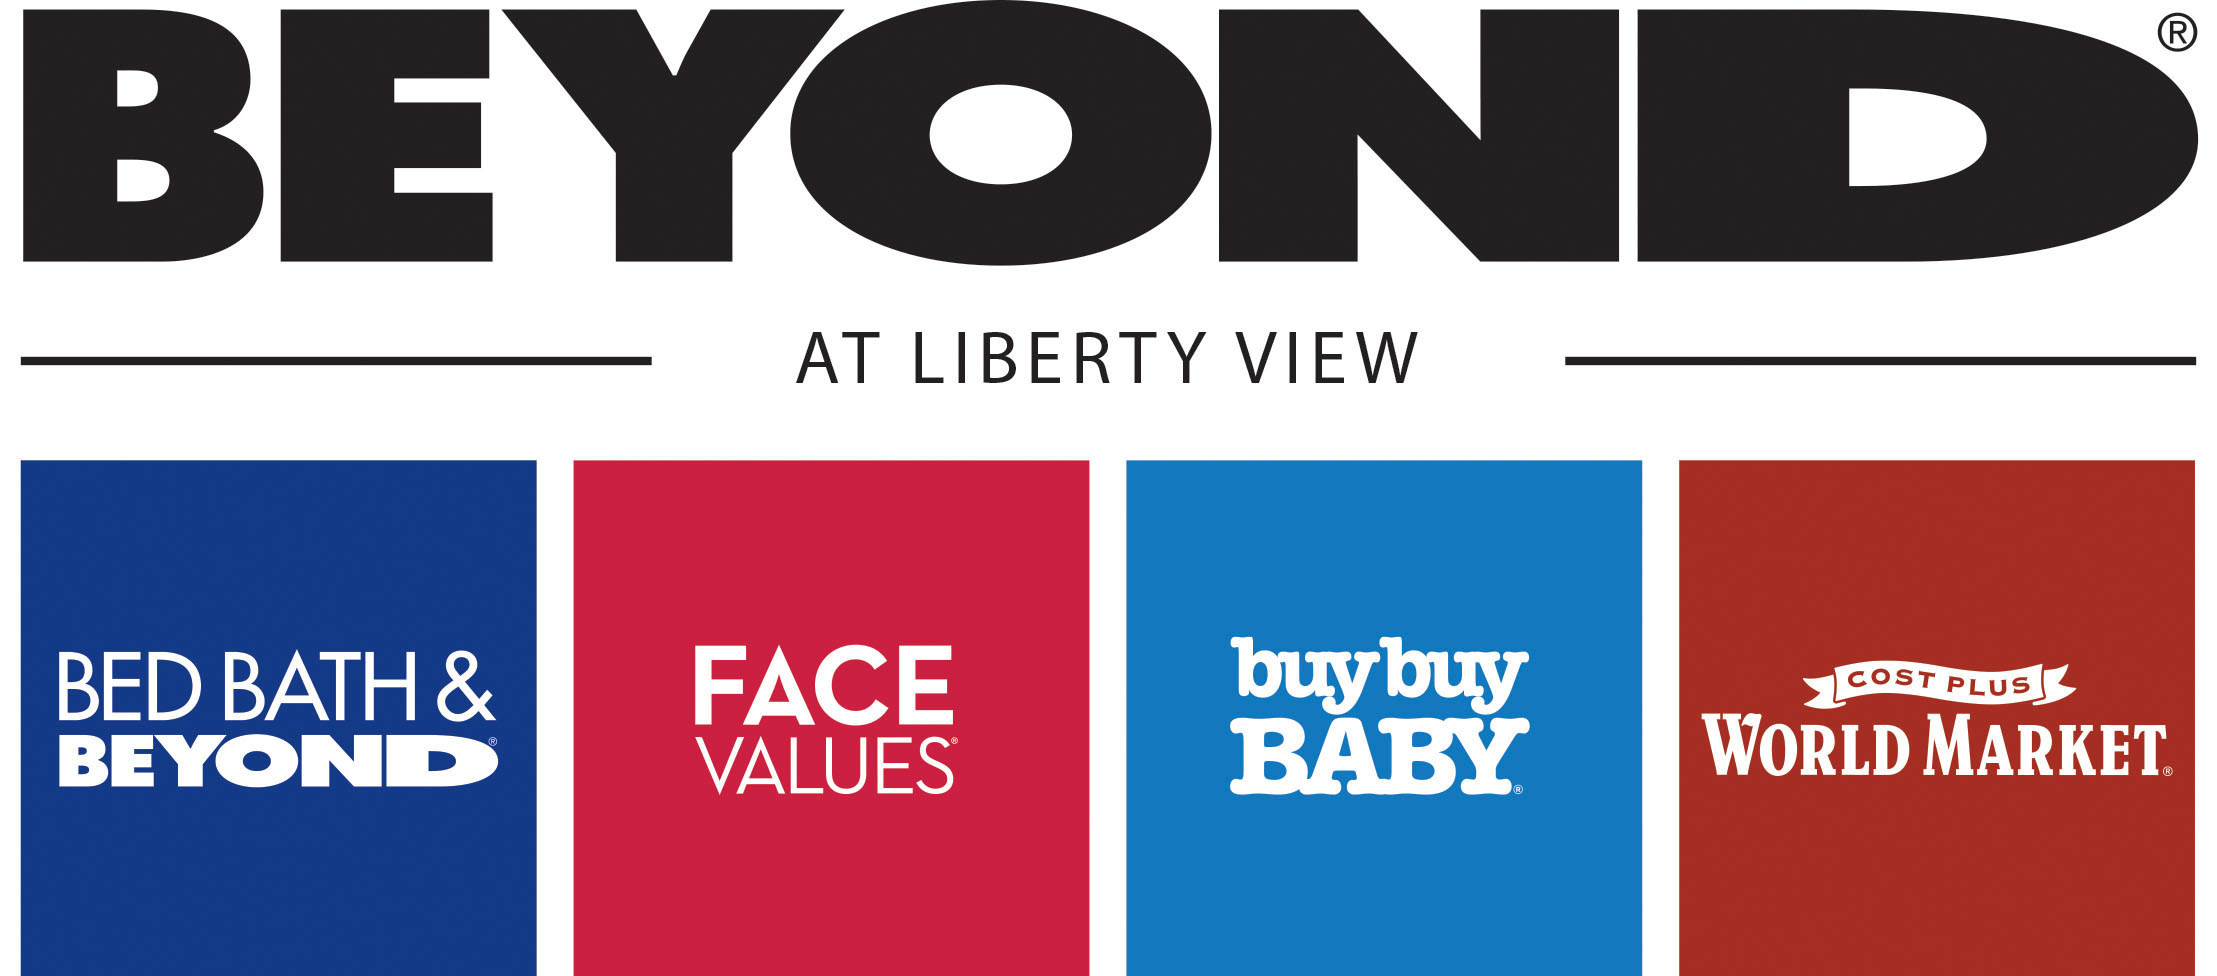 Baby bed and beyond - Bed Bath Beyond Inc Announces The Grand Opening Of Beyond At Liberty View